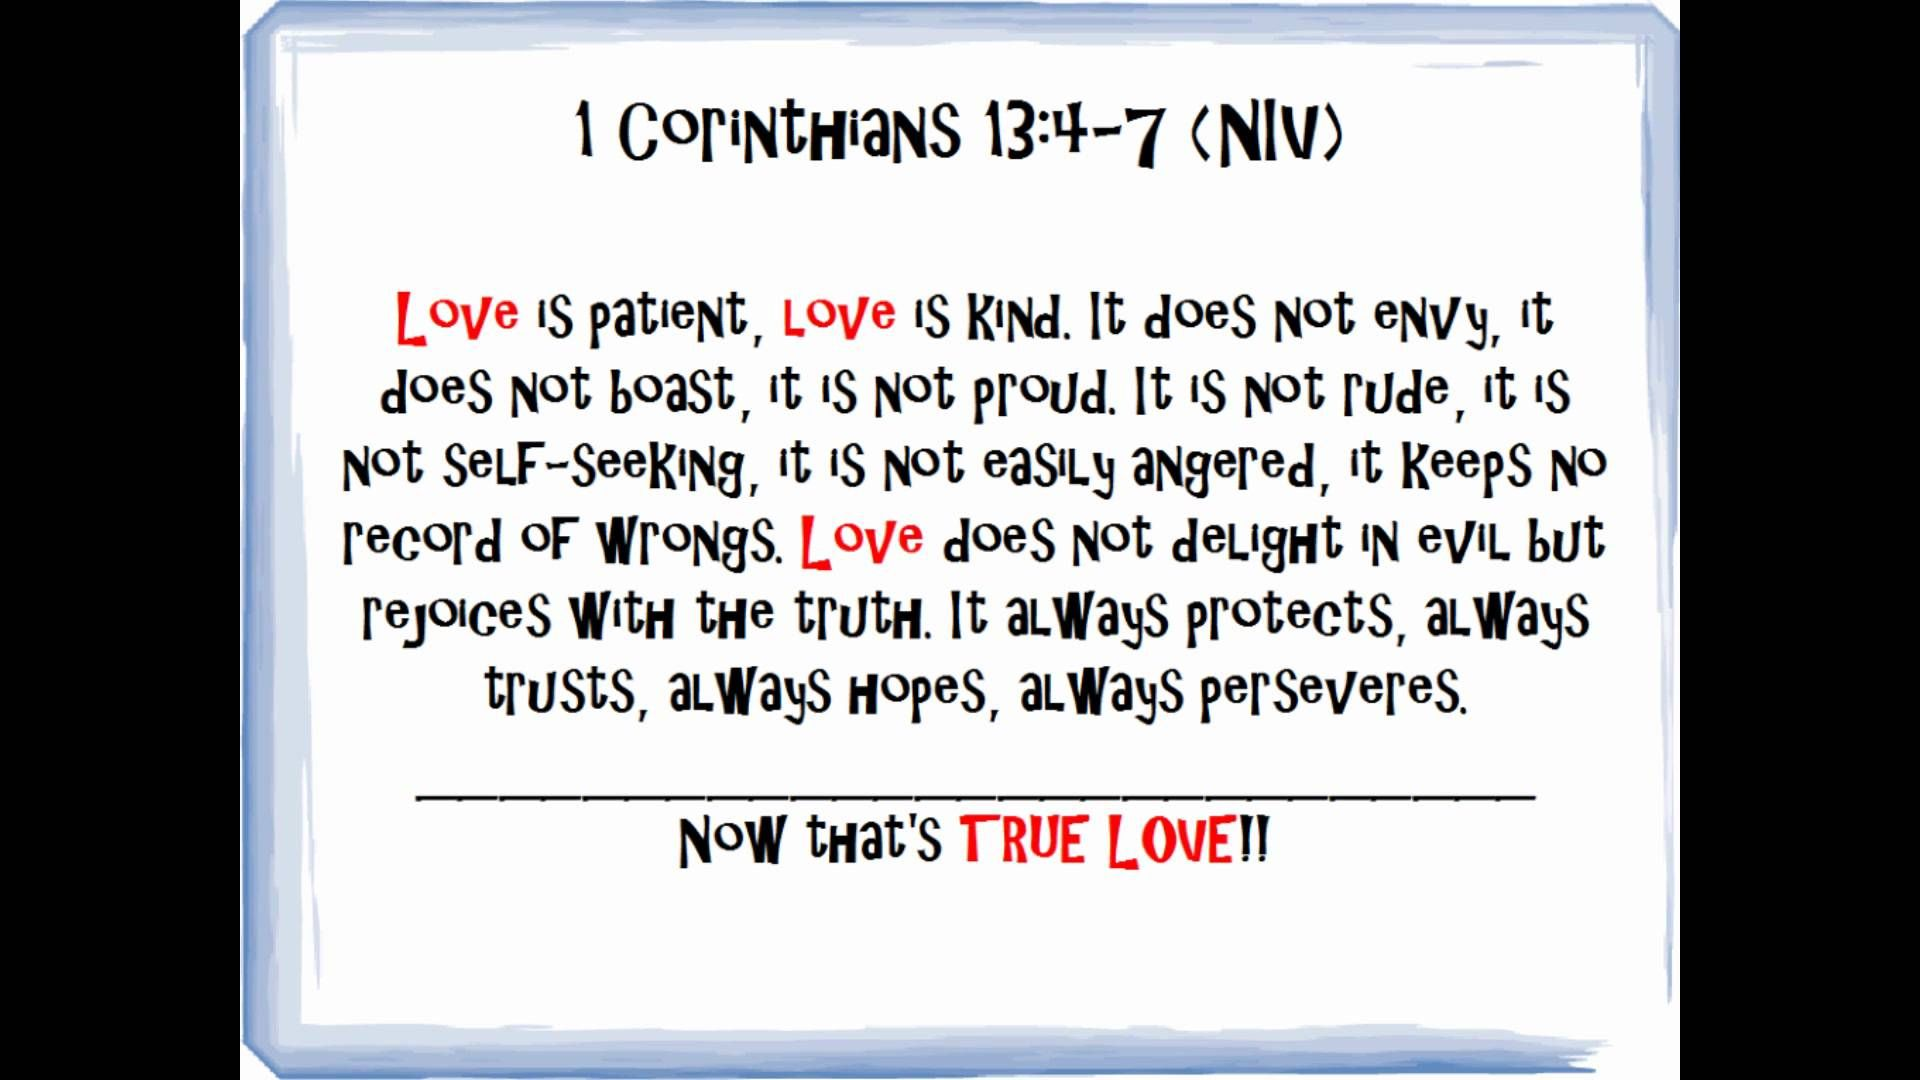 Bible Quotes About Love Bible Quotes On Love  Pt.1 Of Bible Verses On Love Playlist